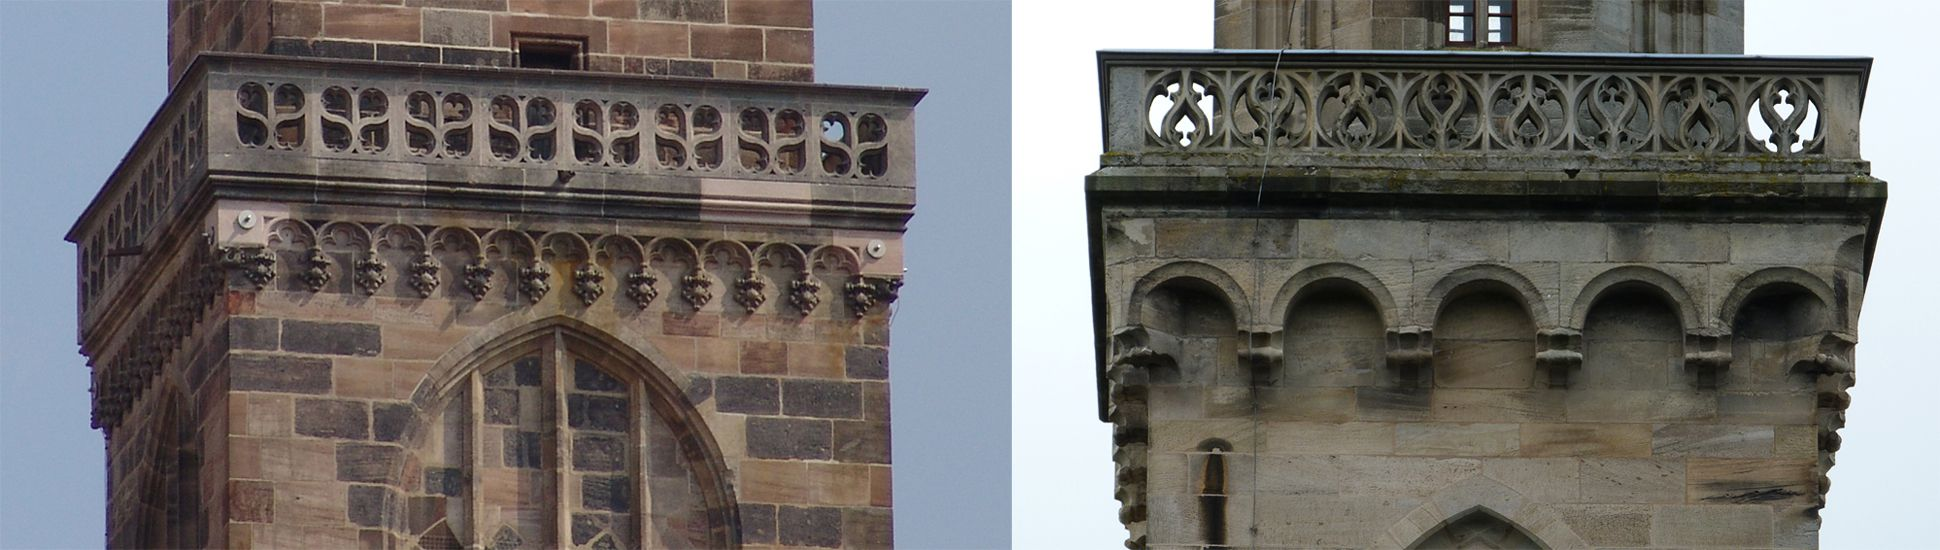 Parish Church St. Peter´s (Sonneberg) Comparison: tracery galleries on the spires of St. Sebald´s in Nuremberg and St. Peter´s in Sonneberg